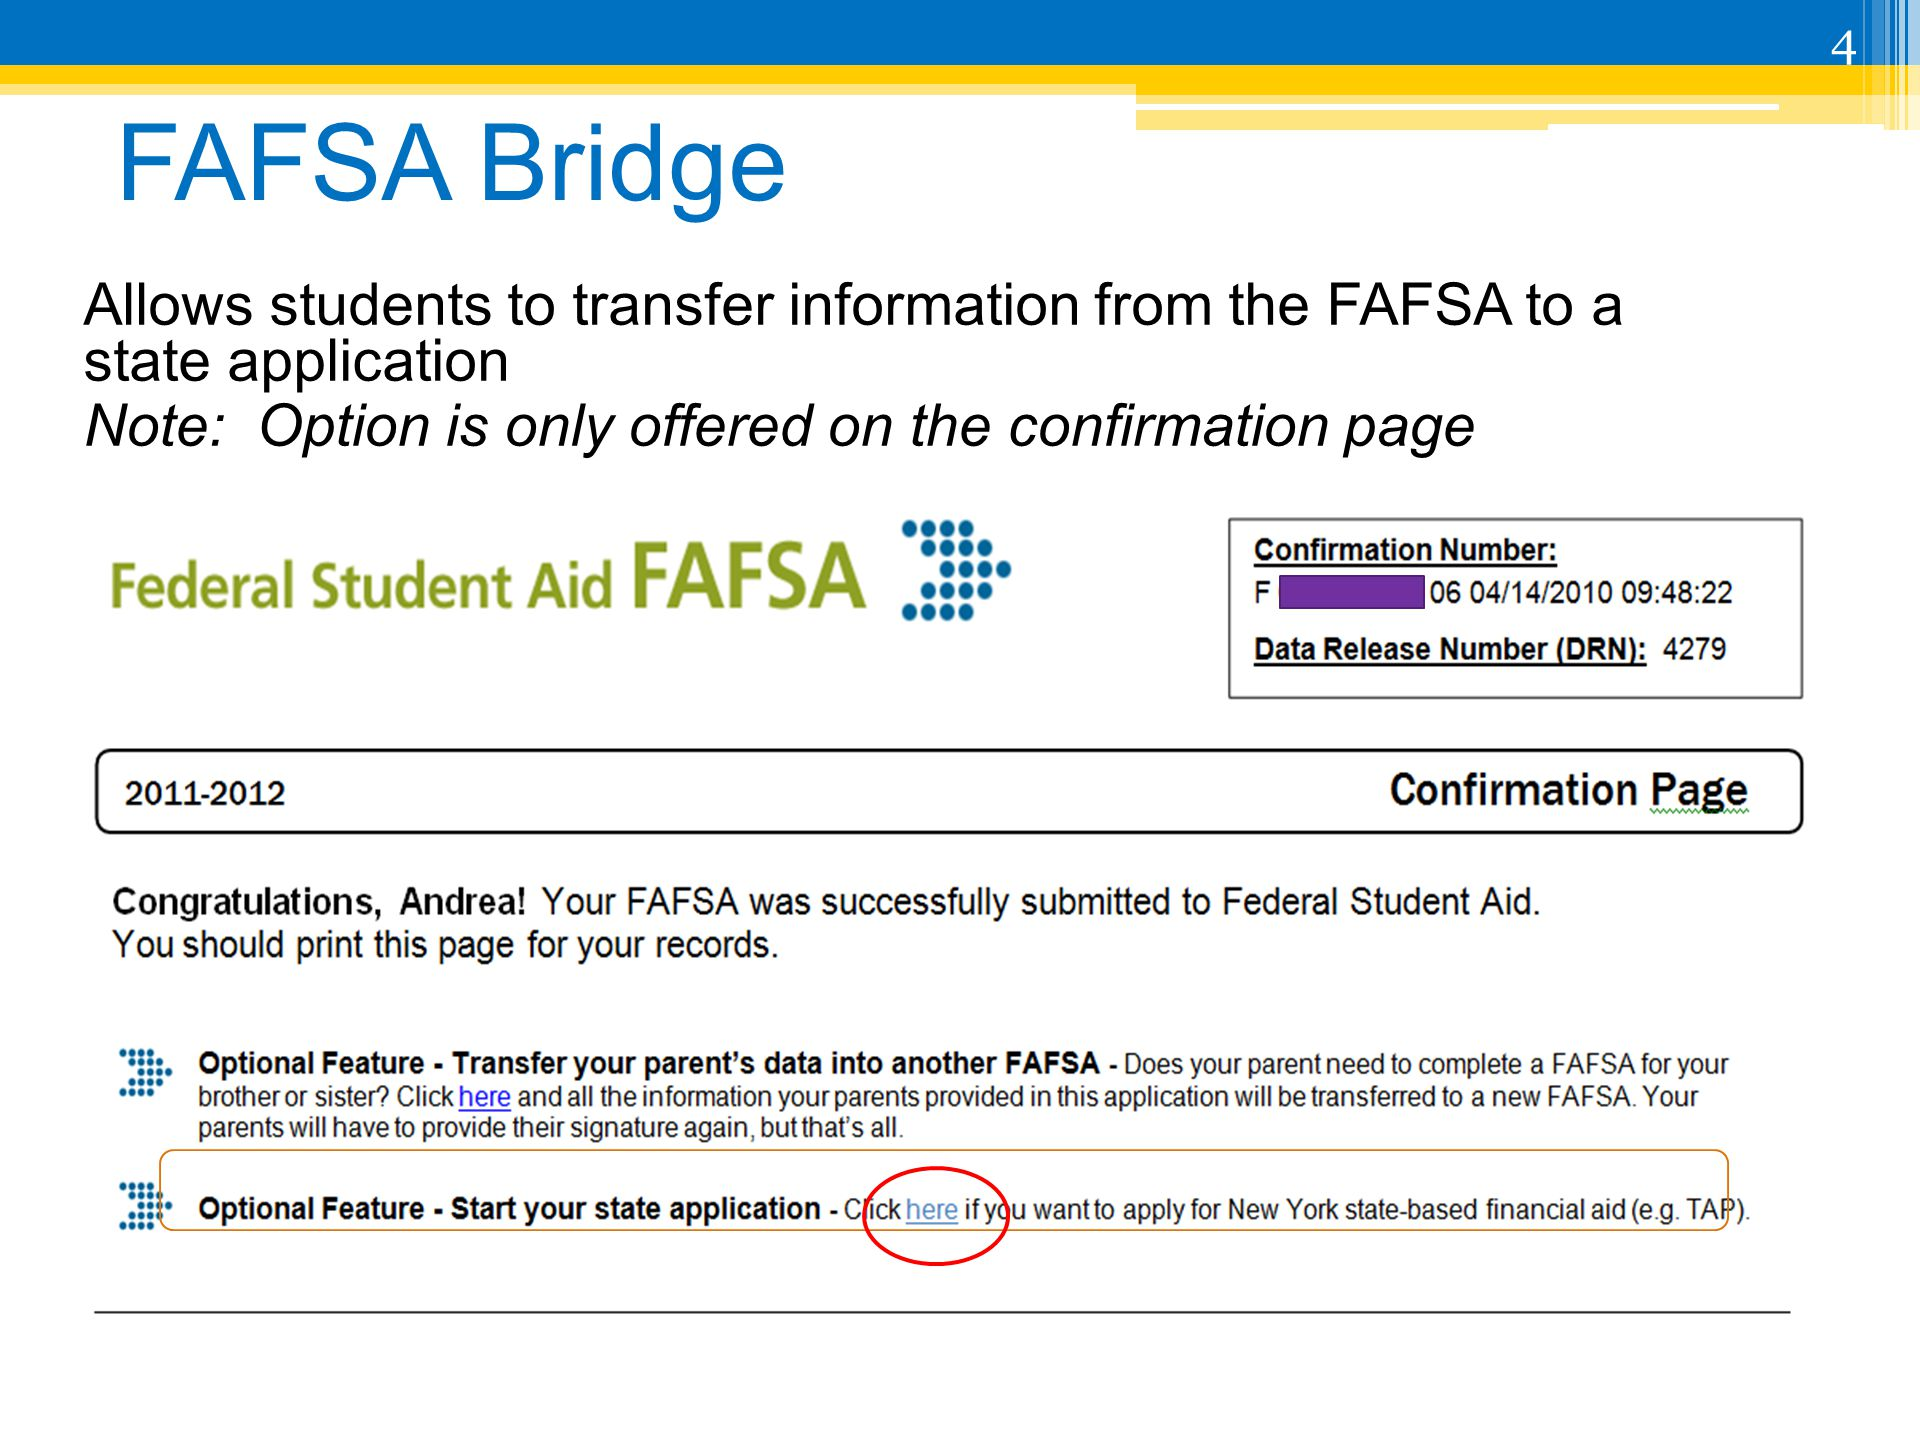 How to report stock options on fafsa